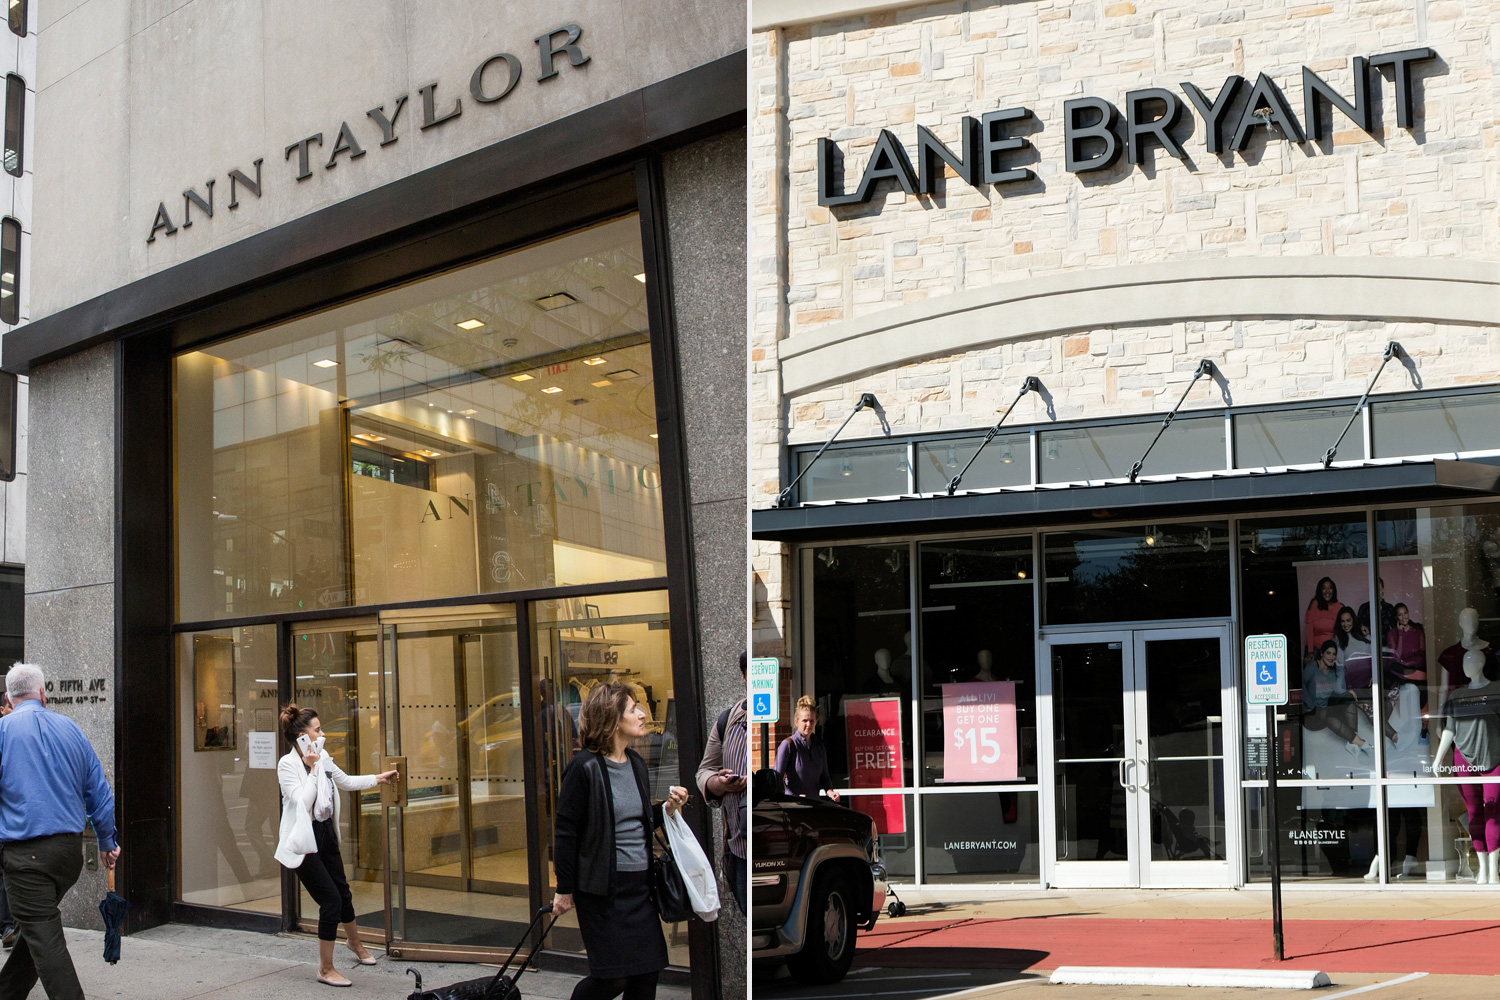 Ann Taylor and Lane Bryant store bankruptcies